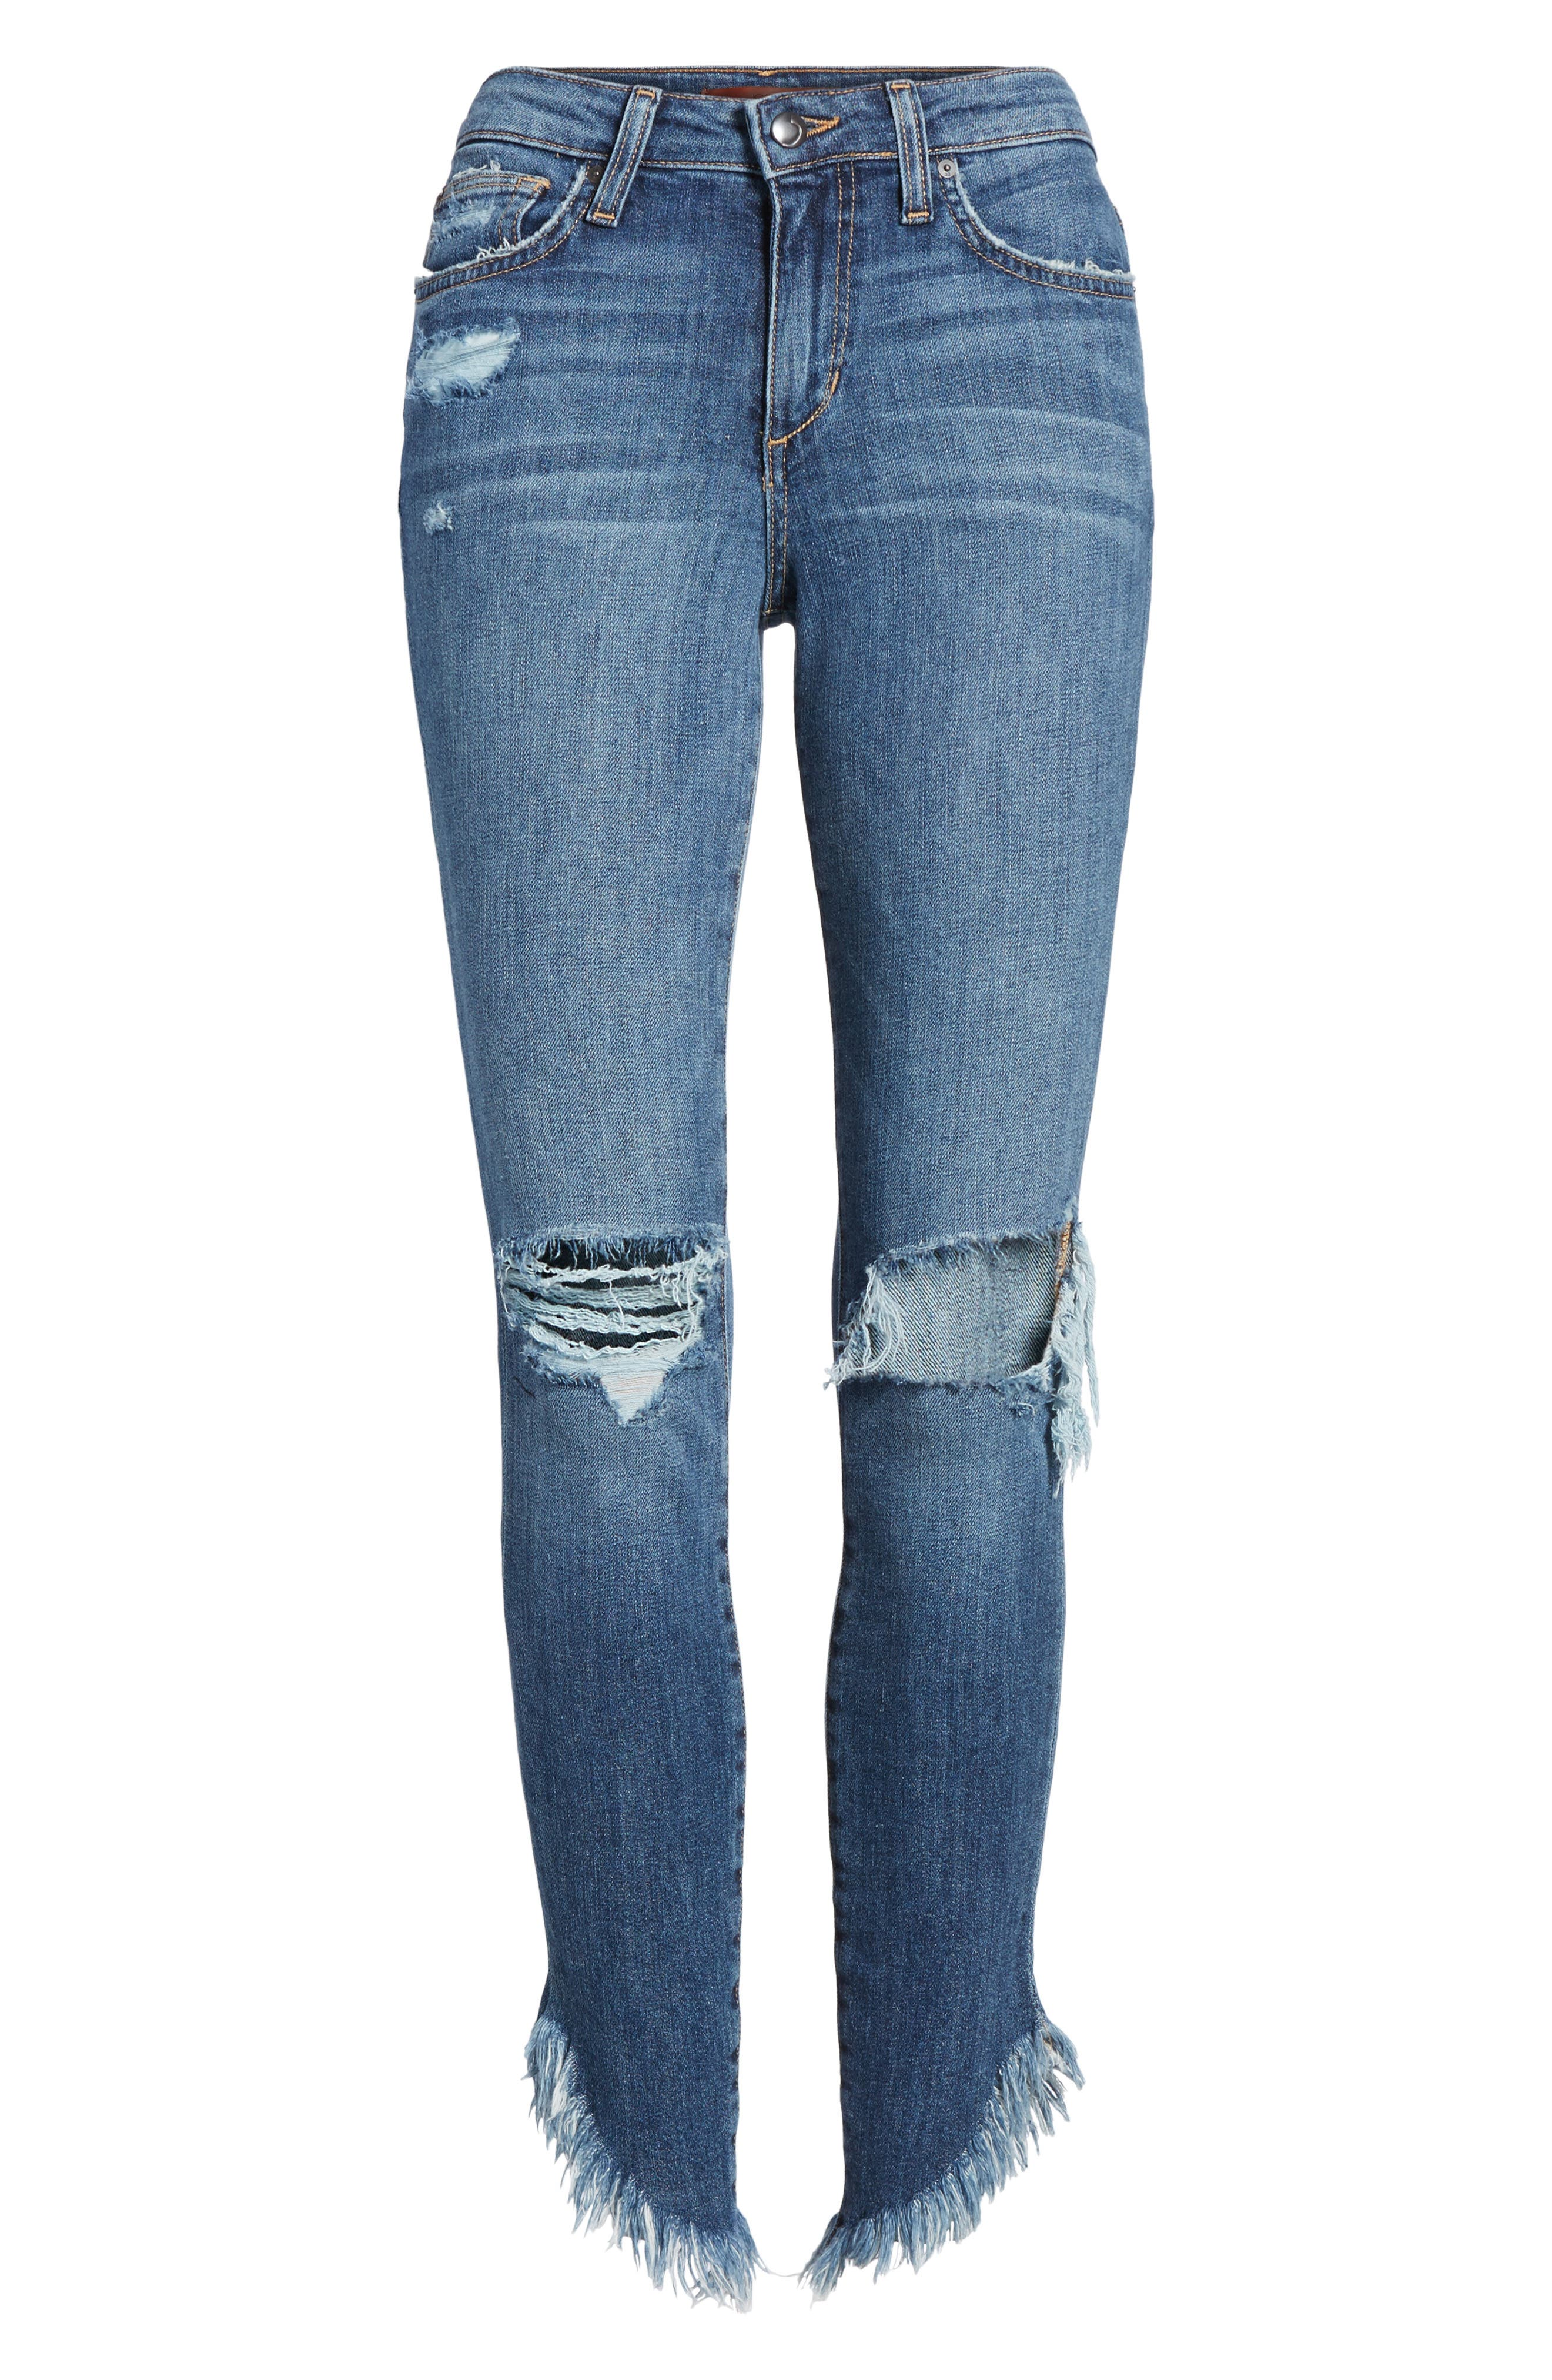 Icon Ankle Skinny Jeans,                             Alternate thumbnail 6, color,                             400